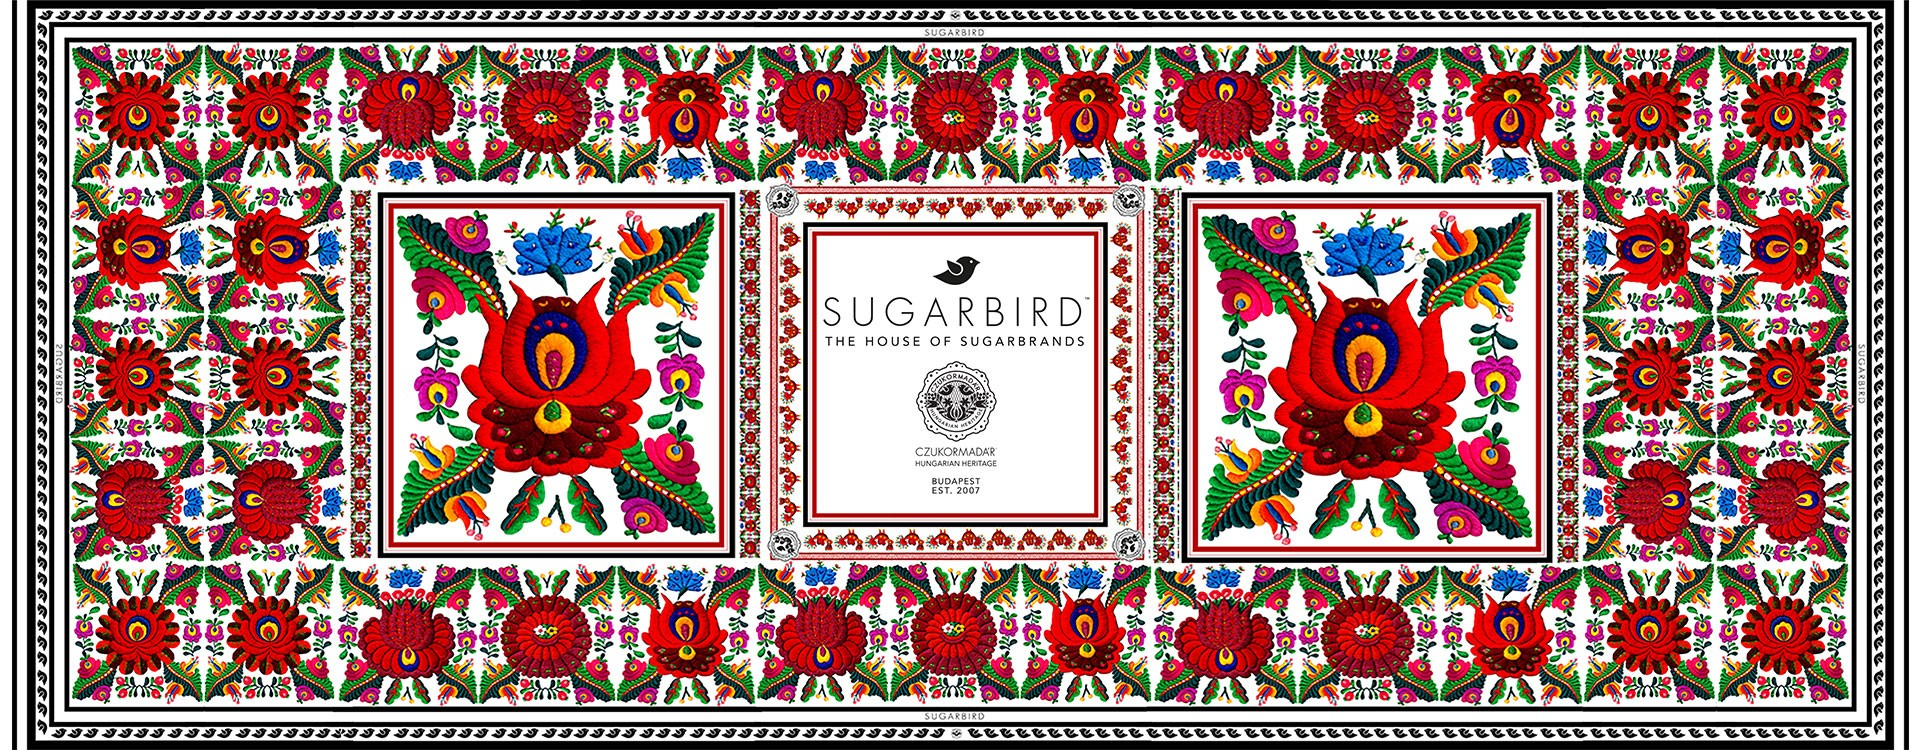 HOUSE OF SUGARBRANDS